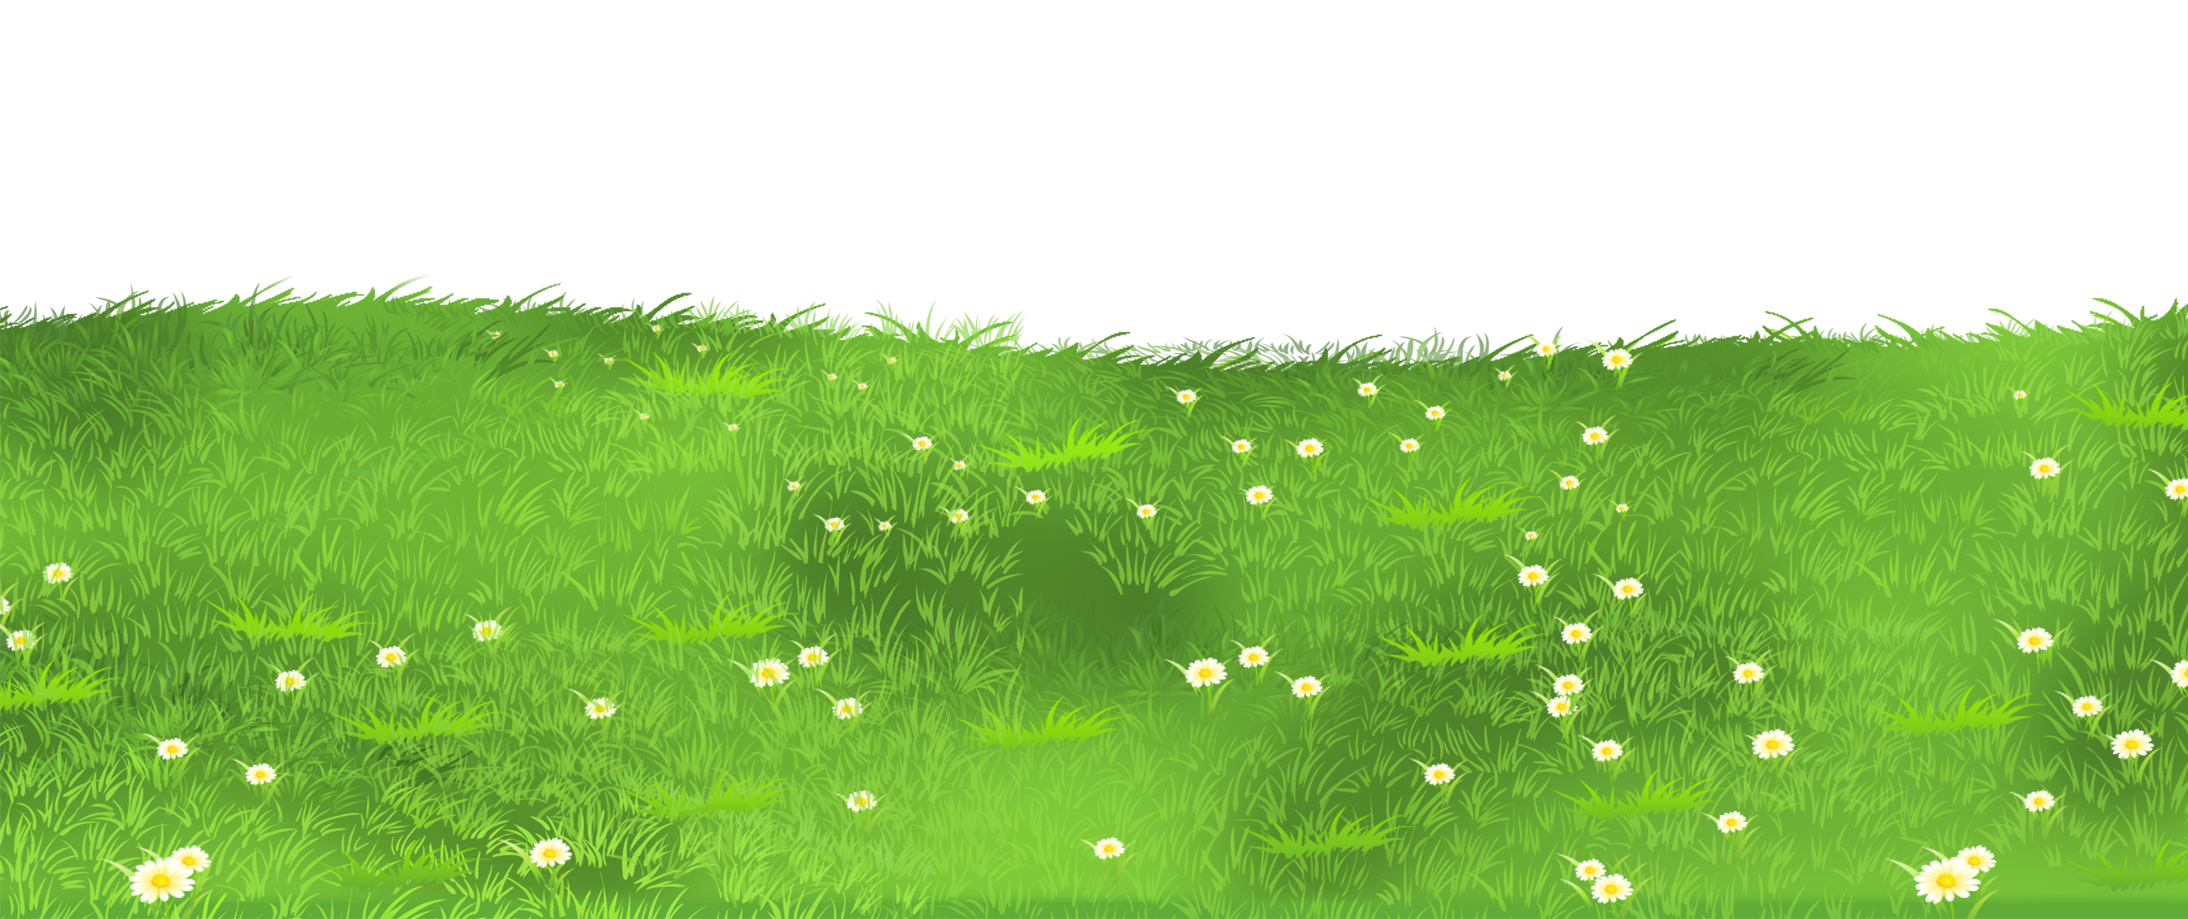 Ground clipart clear background grass. With daisies png gallery